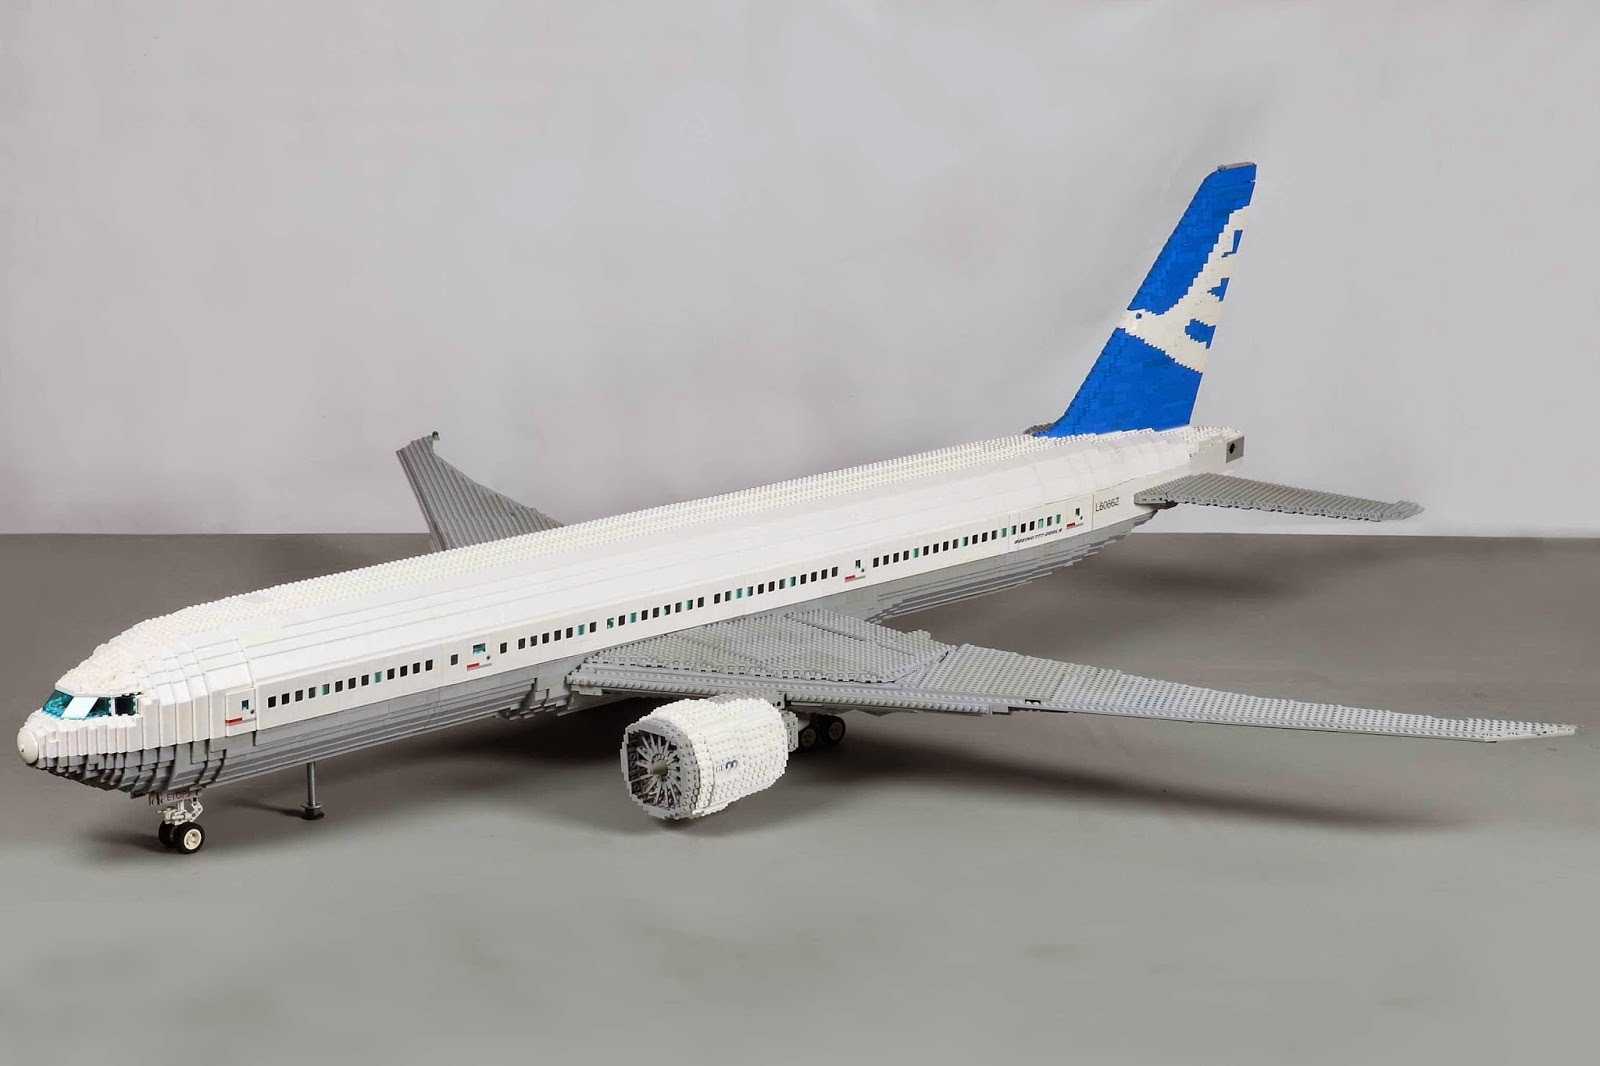 american airlines airplanes toys with Lego Moc Boeing 777 on B000v0fh1q likewise United Airlines Livery History as well Show Boobies See Women Wearing Low Cut Tops Expose Boobs Landing Jobs Photos as well Singapore Airlines Concorde furthermore Lego Moc Boeing 777.